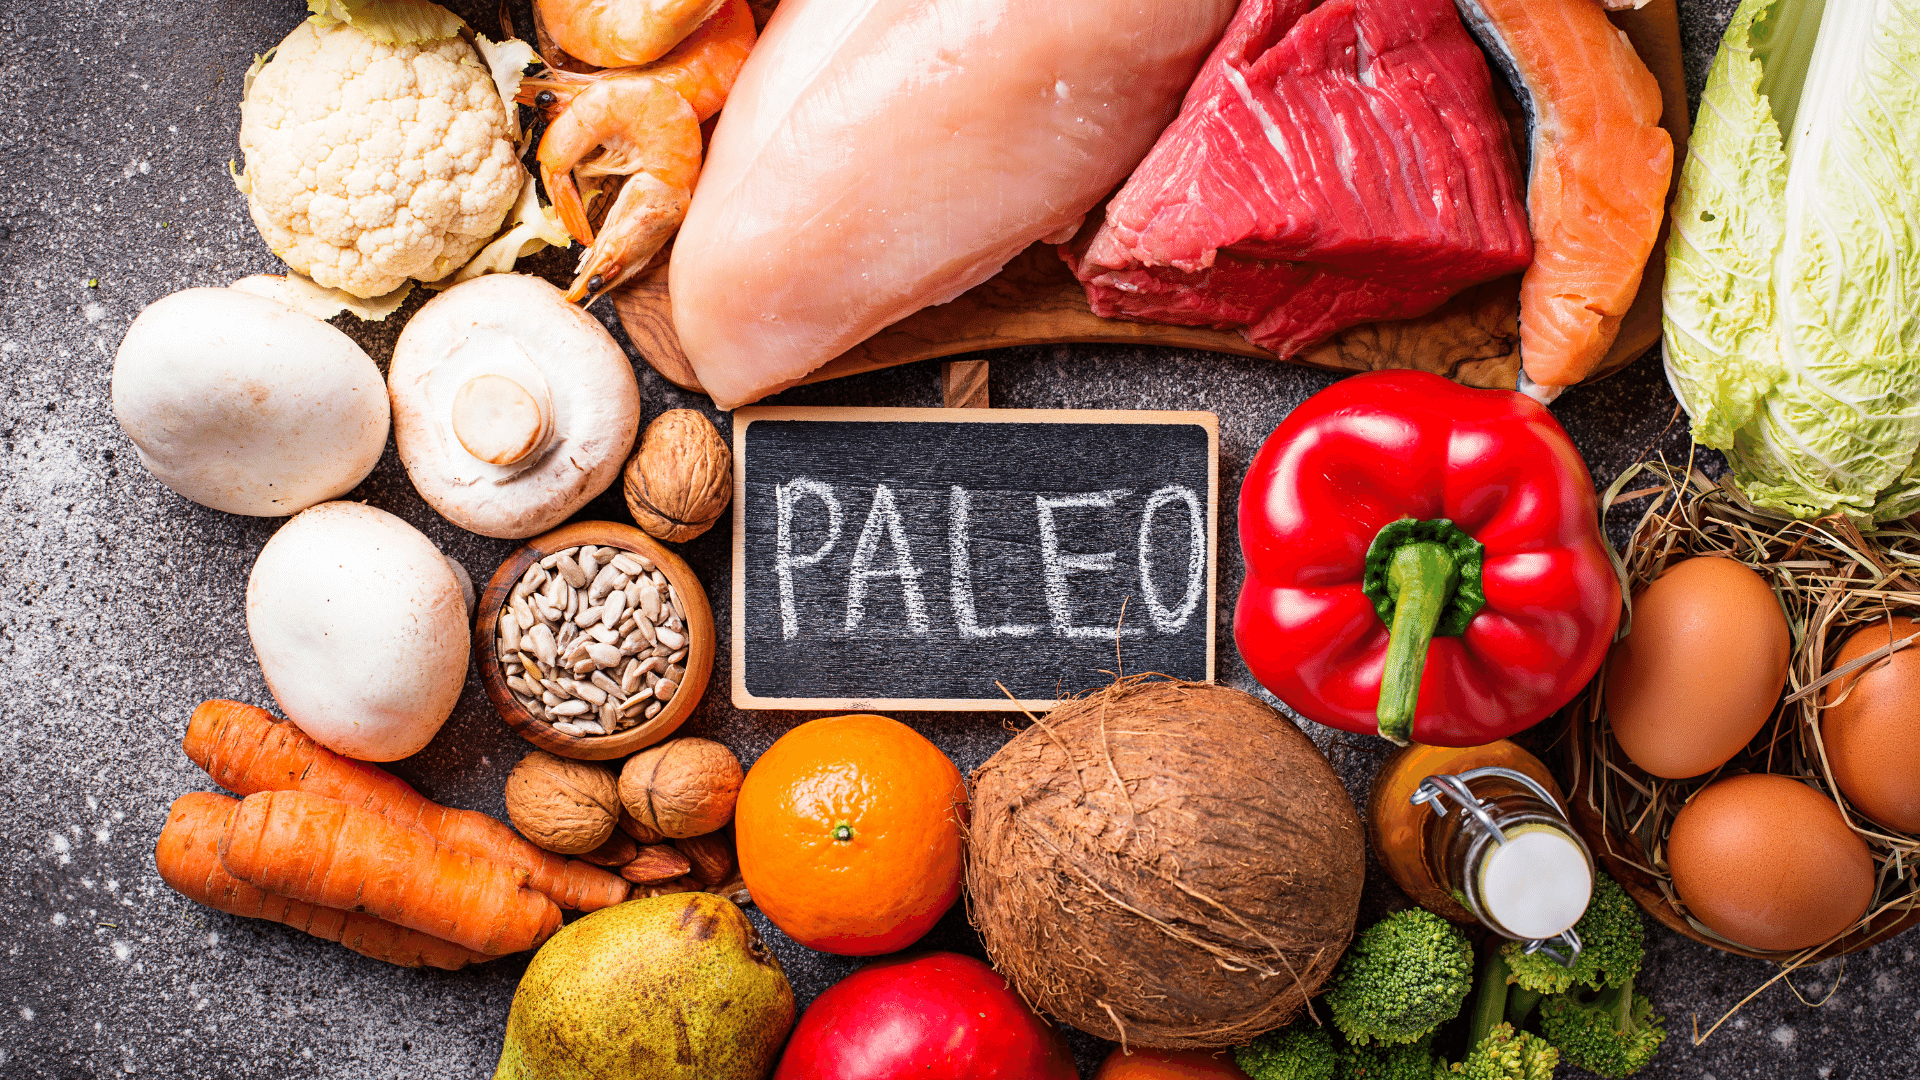 Paleo diet rules you need to know!